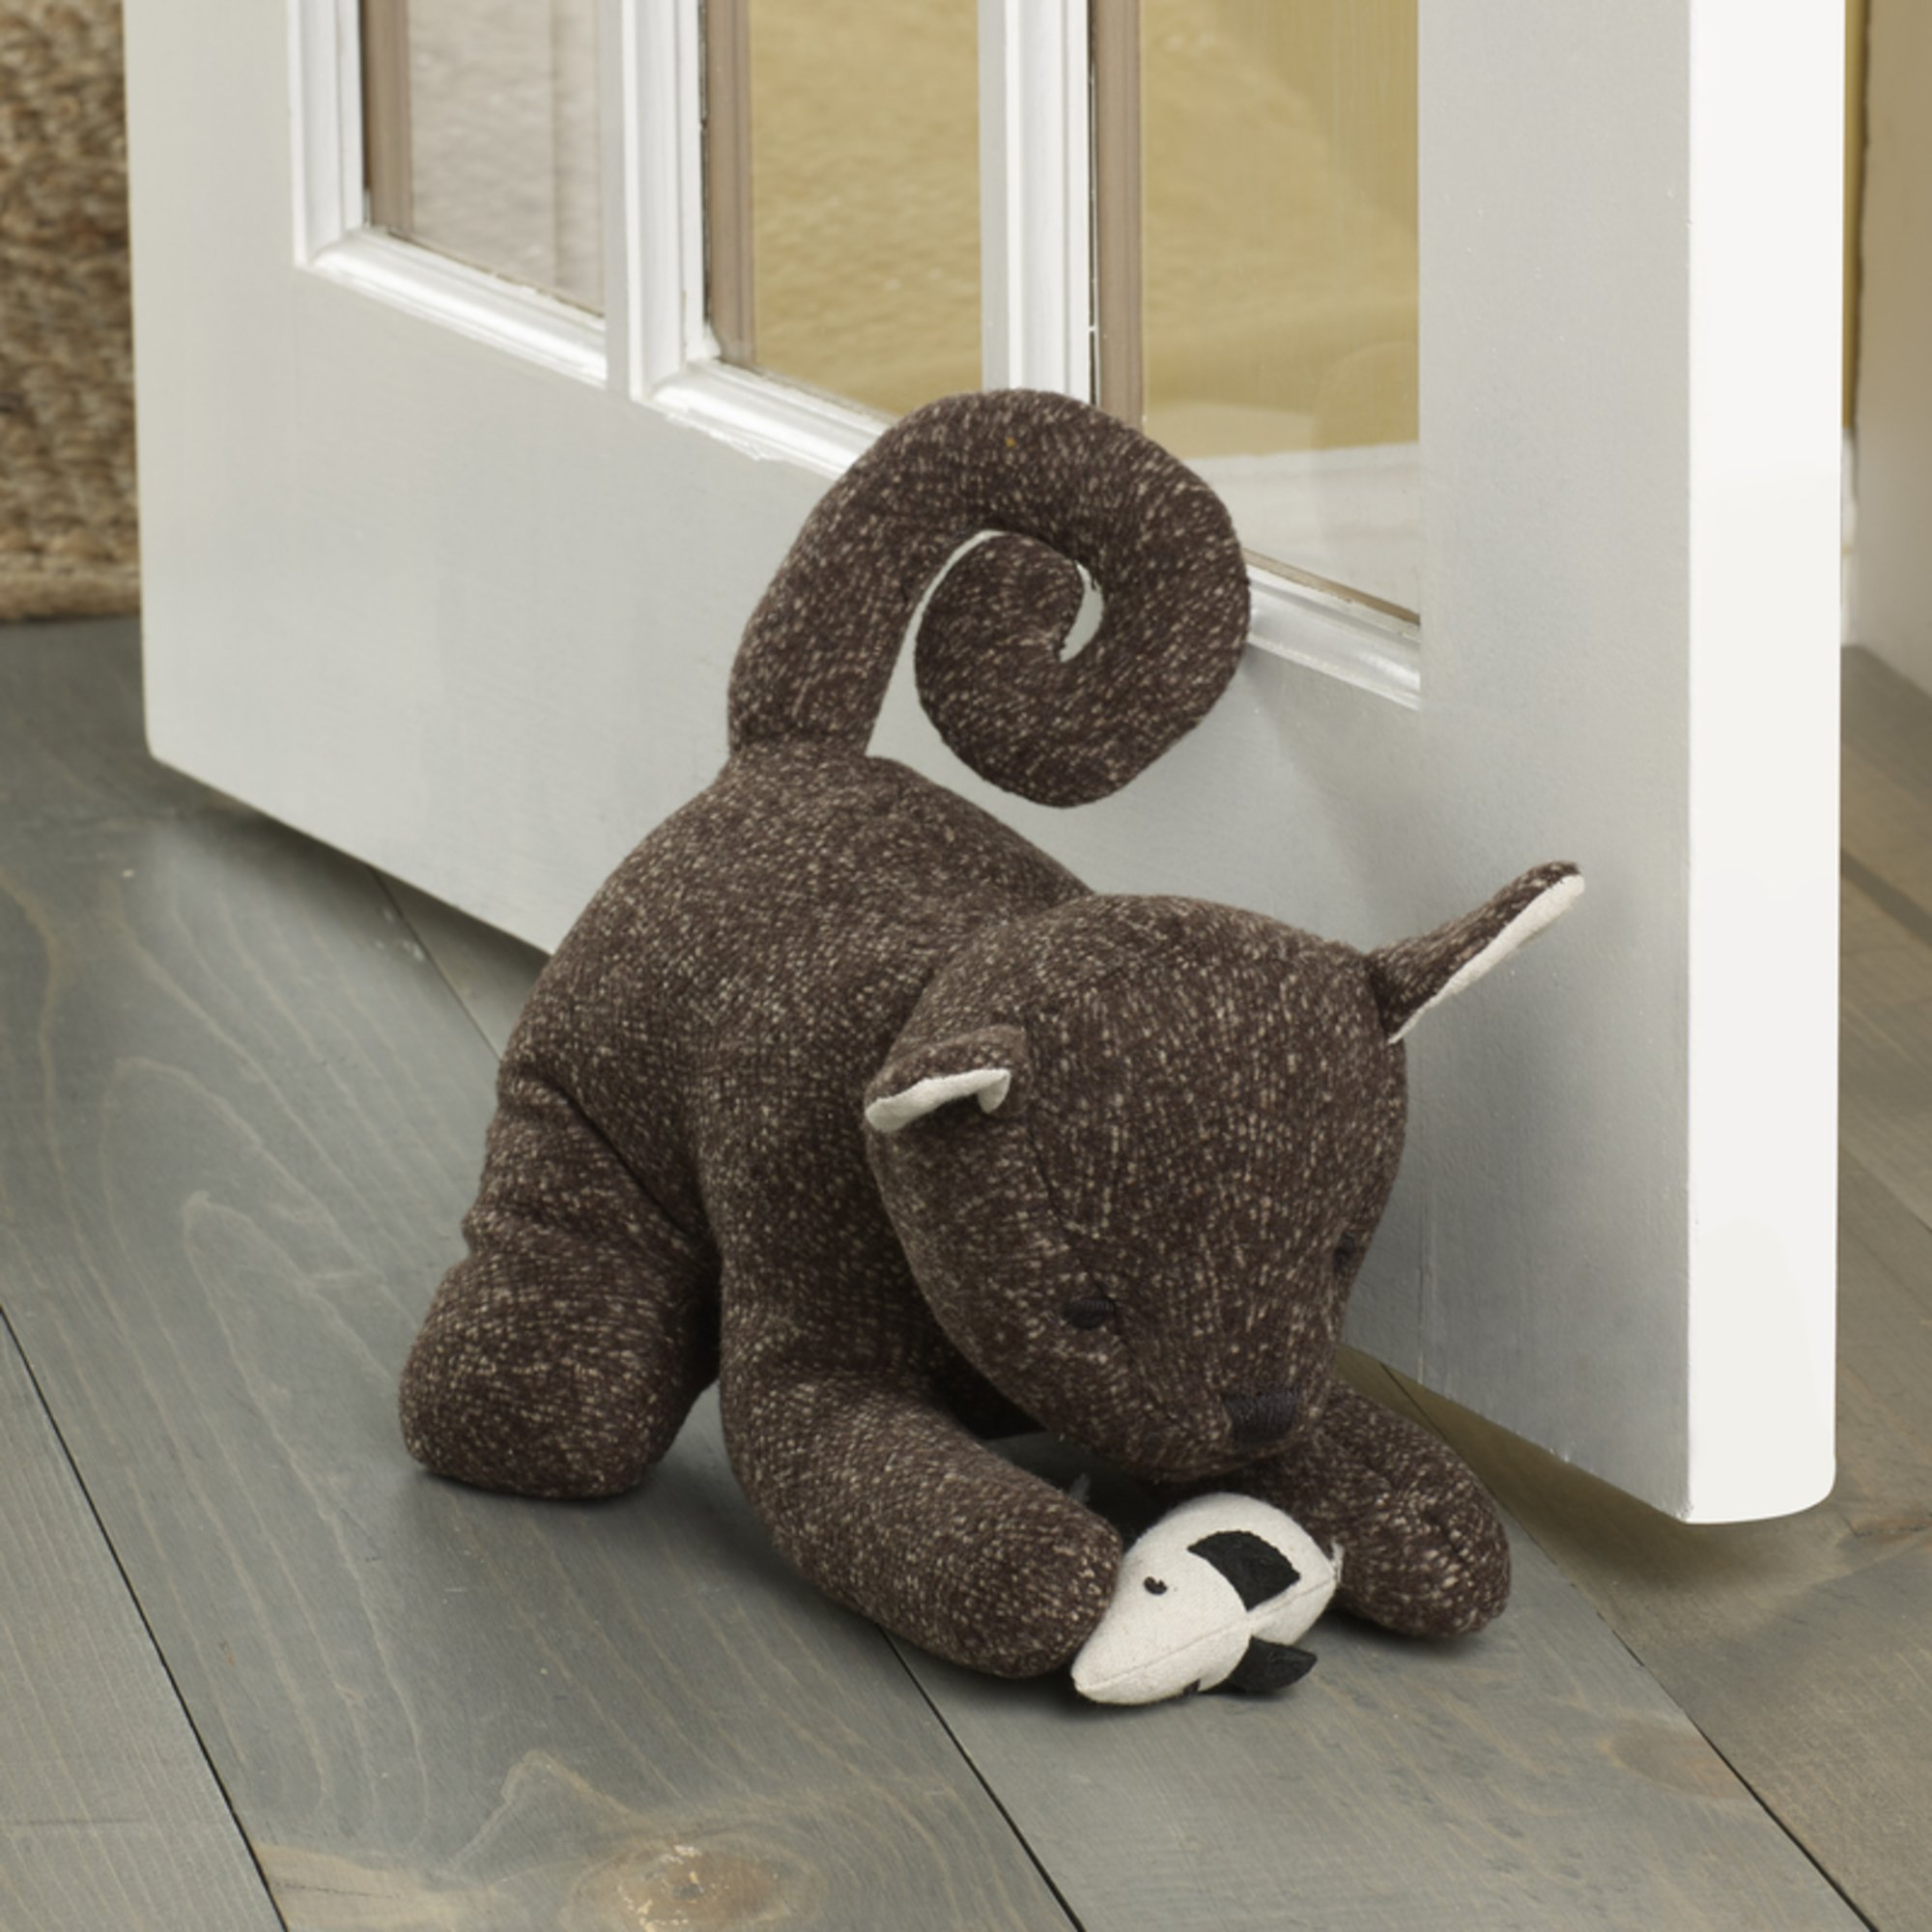 ELEMENTS 5218430 Decorative Polyester Door Stop, 10'', Brown Cat by ELEMENTS